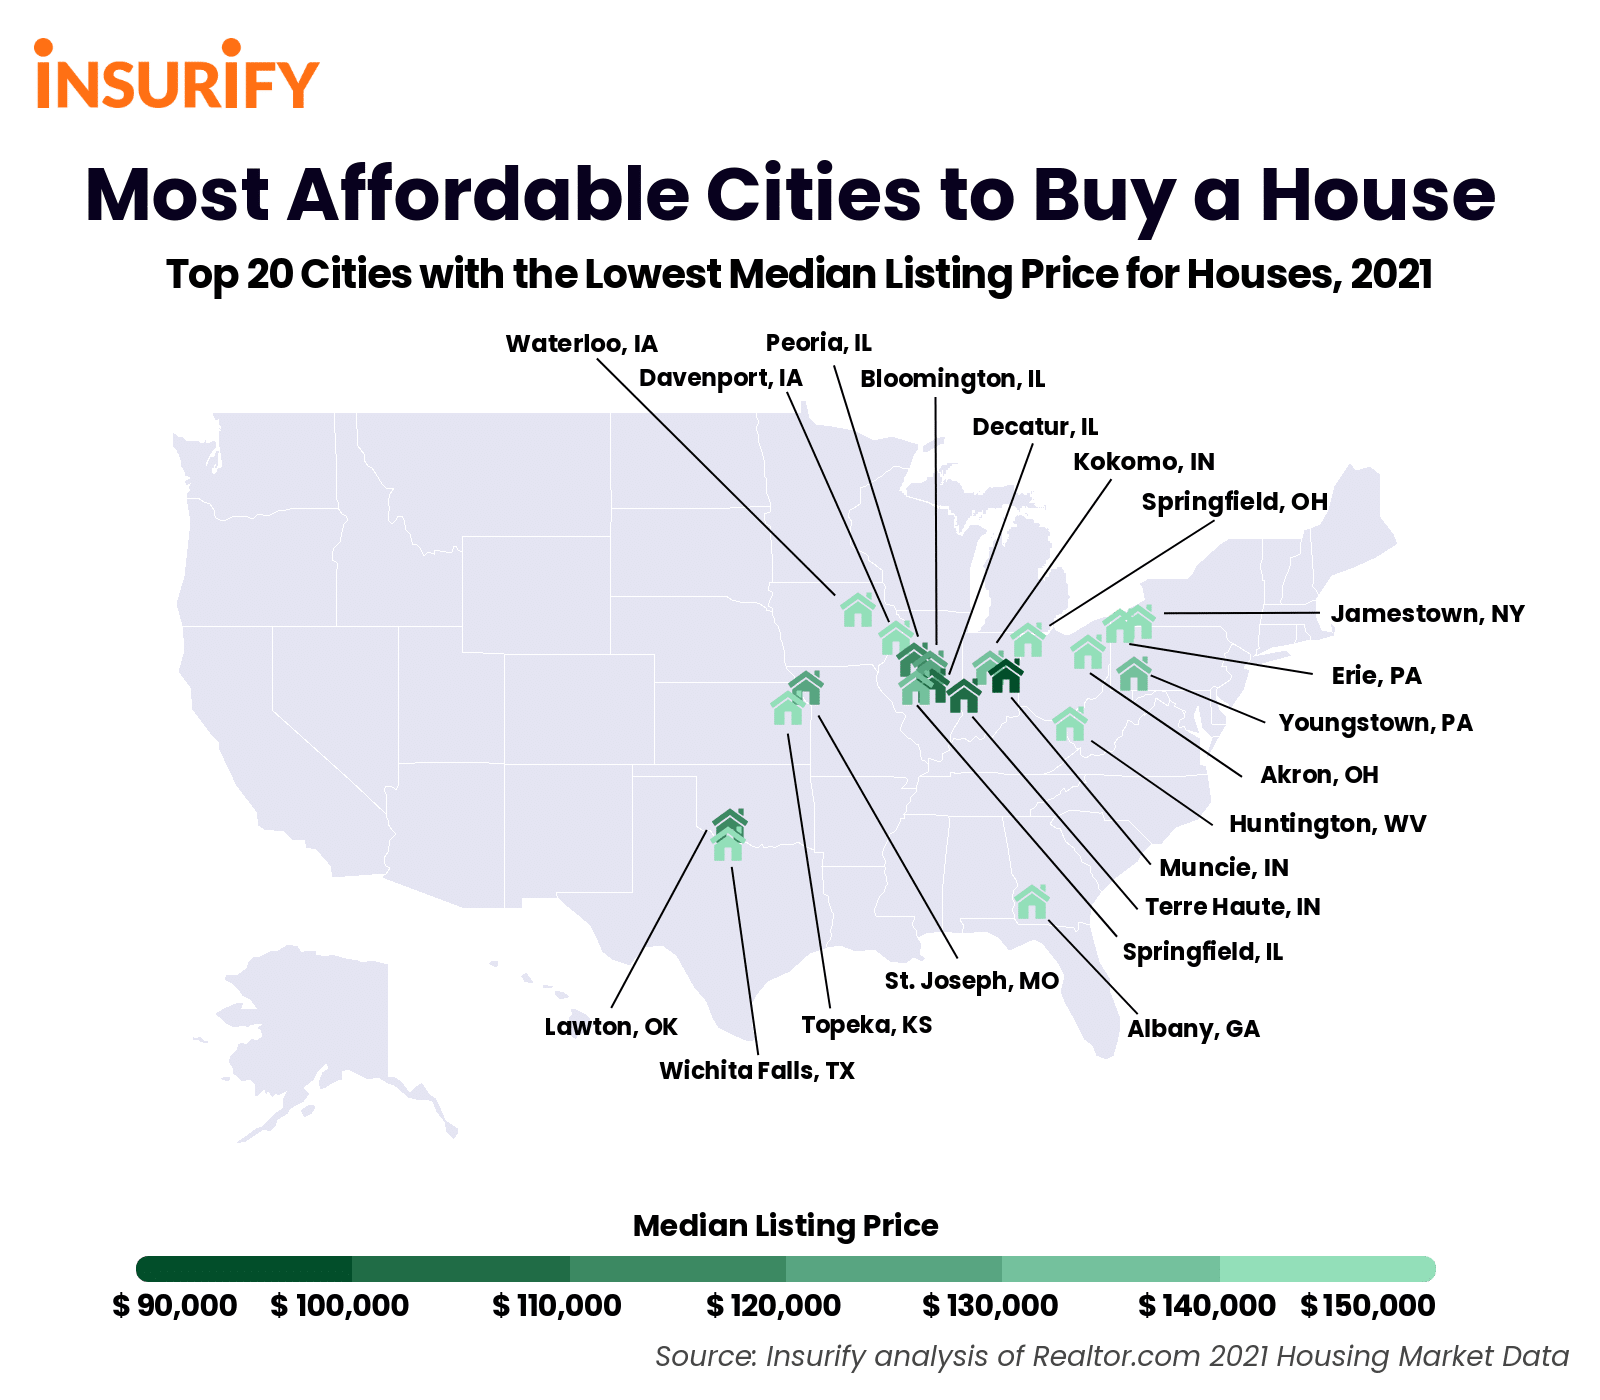 Heat map of the top 20 most affordable cities to buy a home in the United States